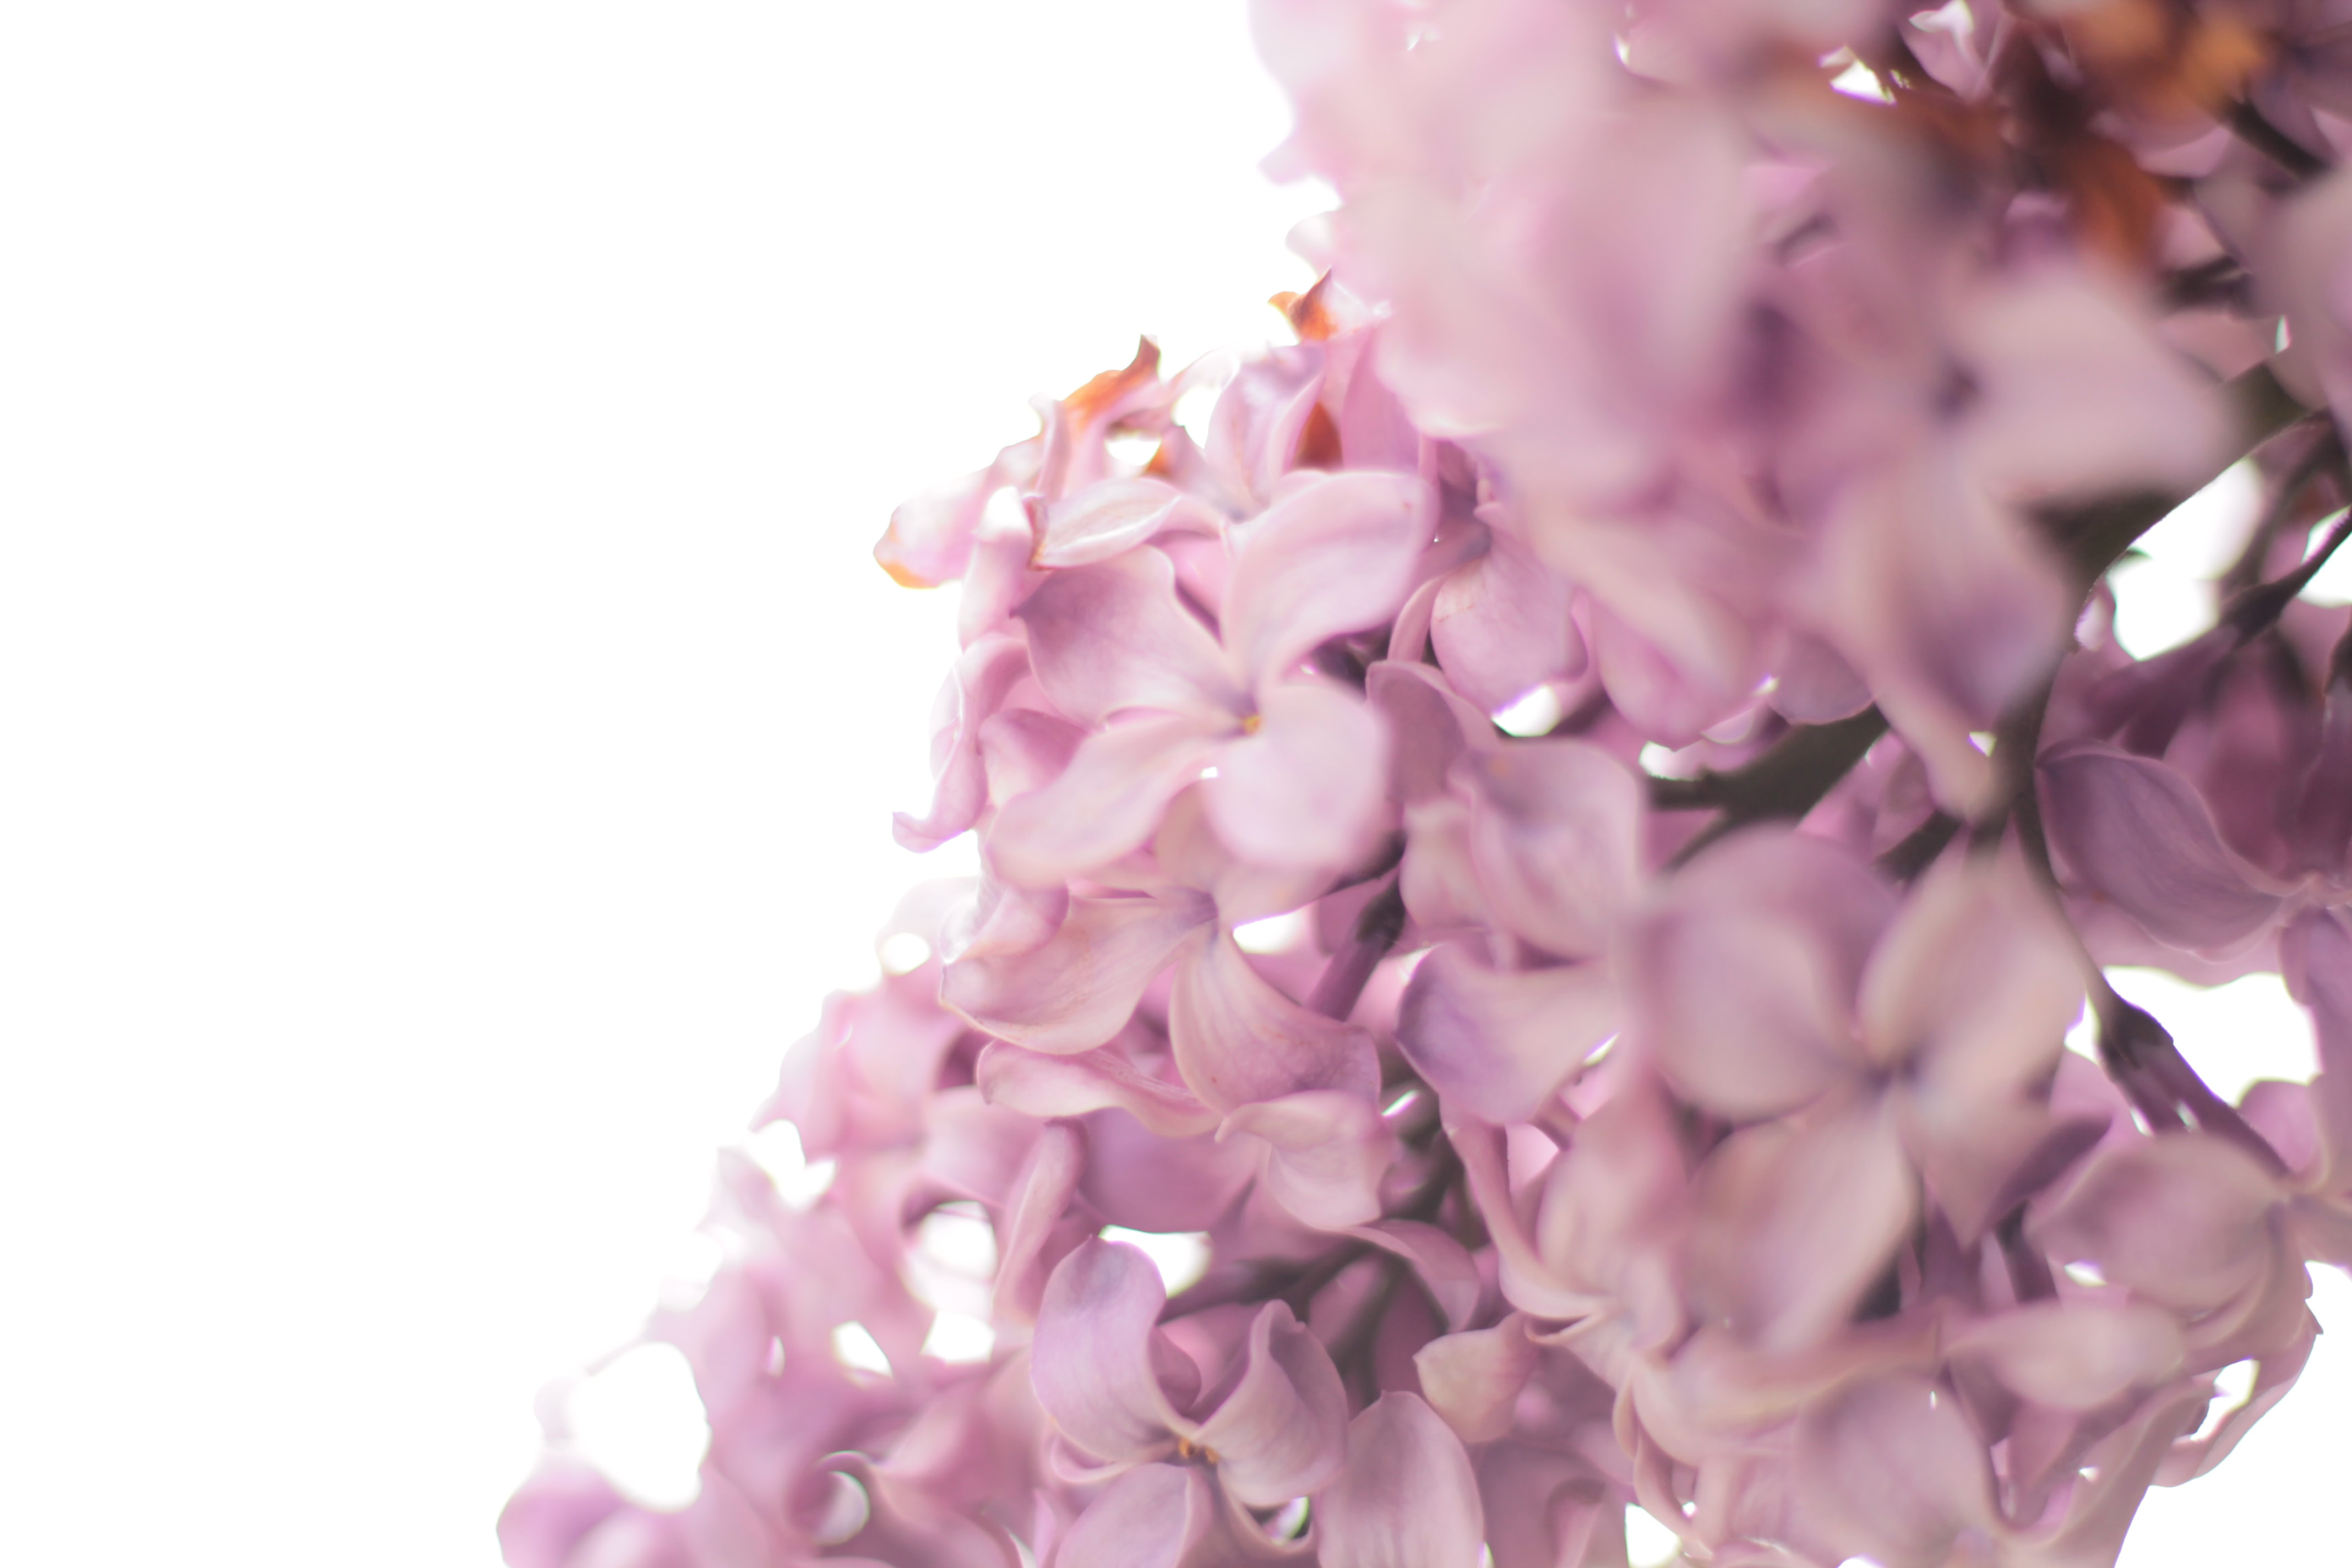 lilacs on monday, a poem poem stories